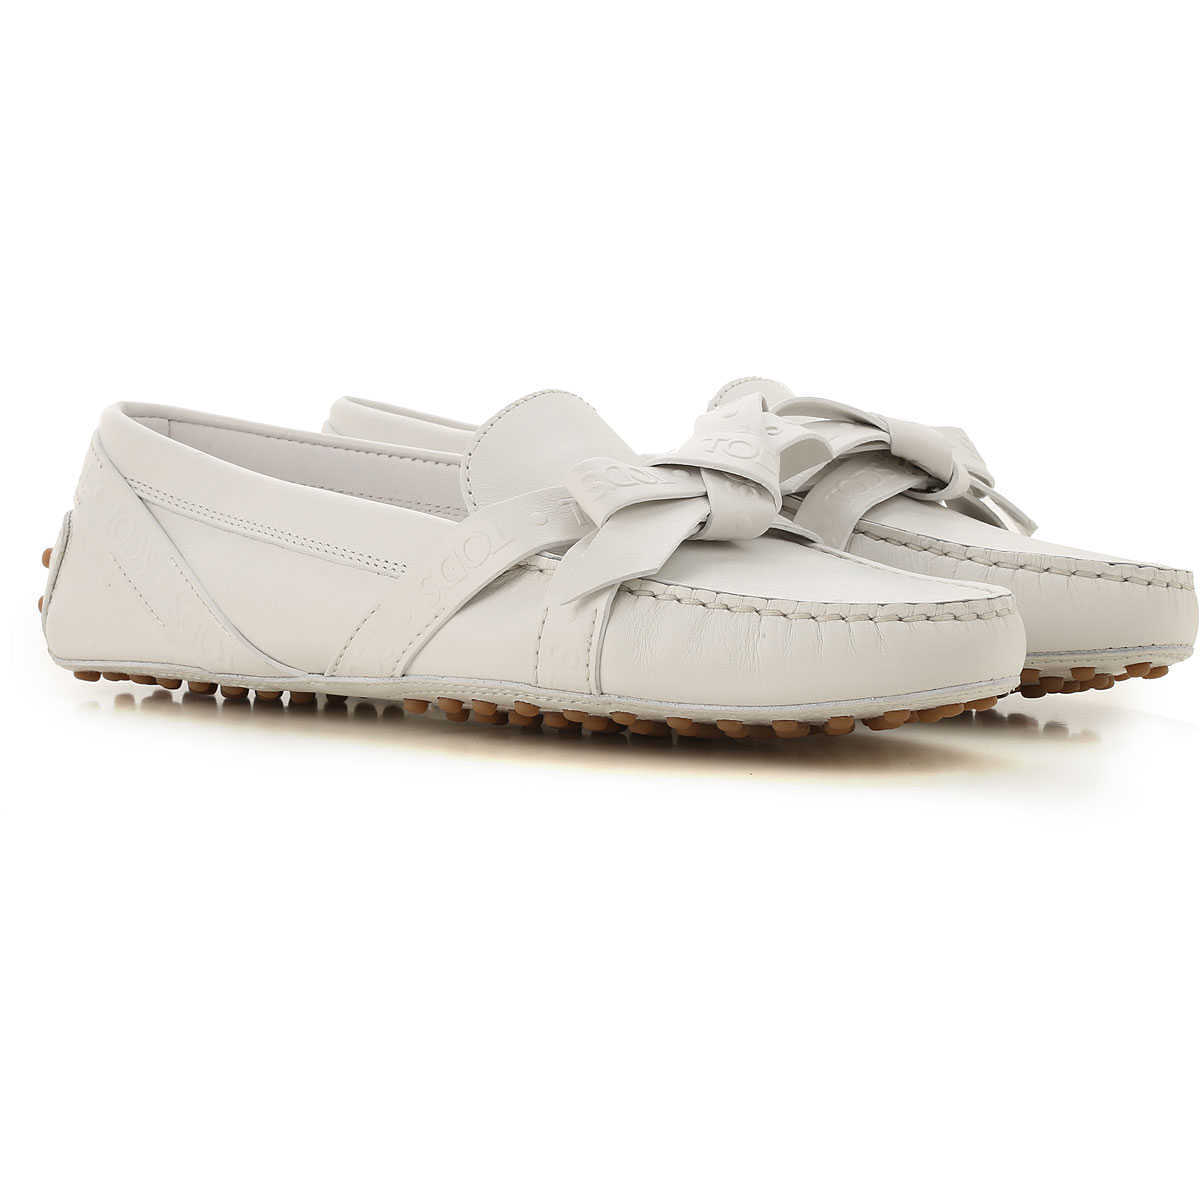 Tods Loafers for Women On Sale Icy White UK - GOOFASH